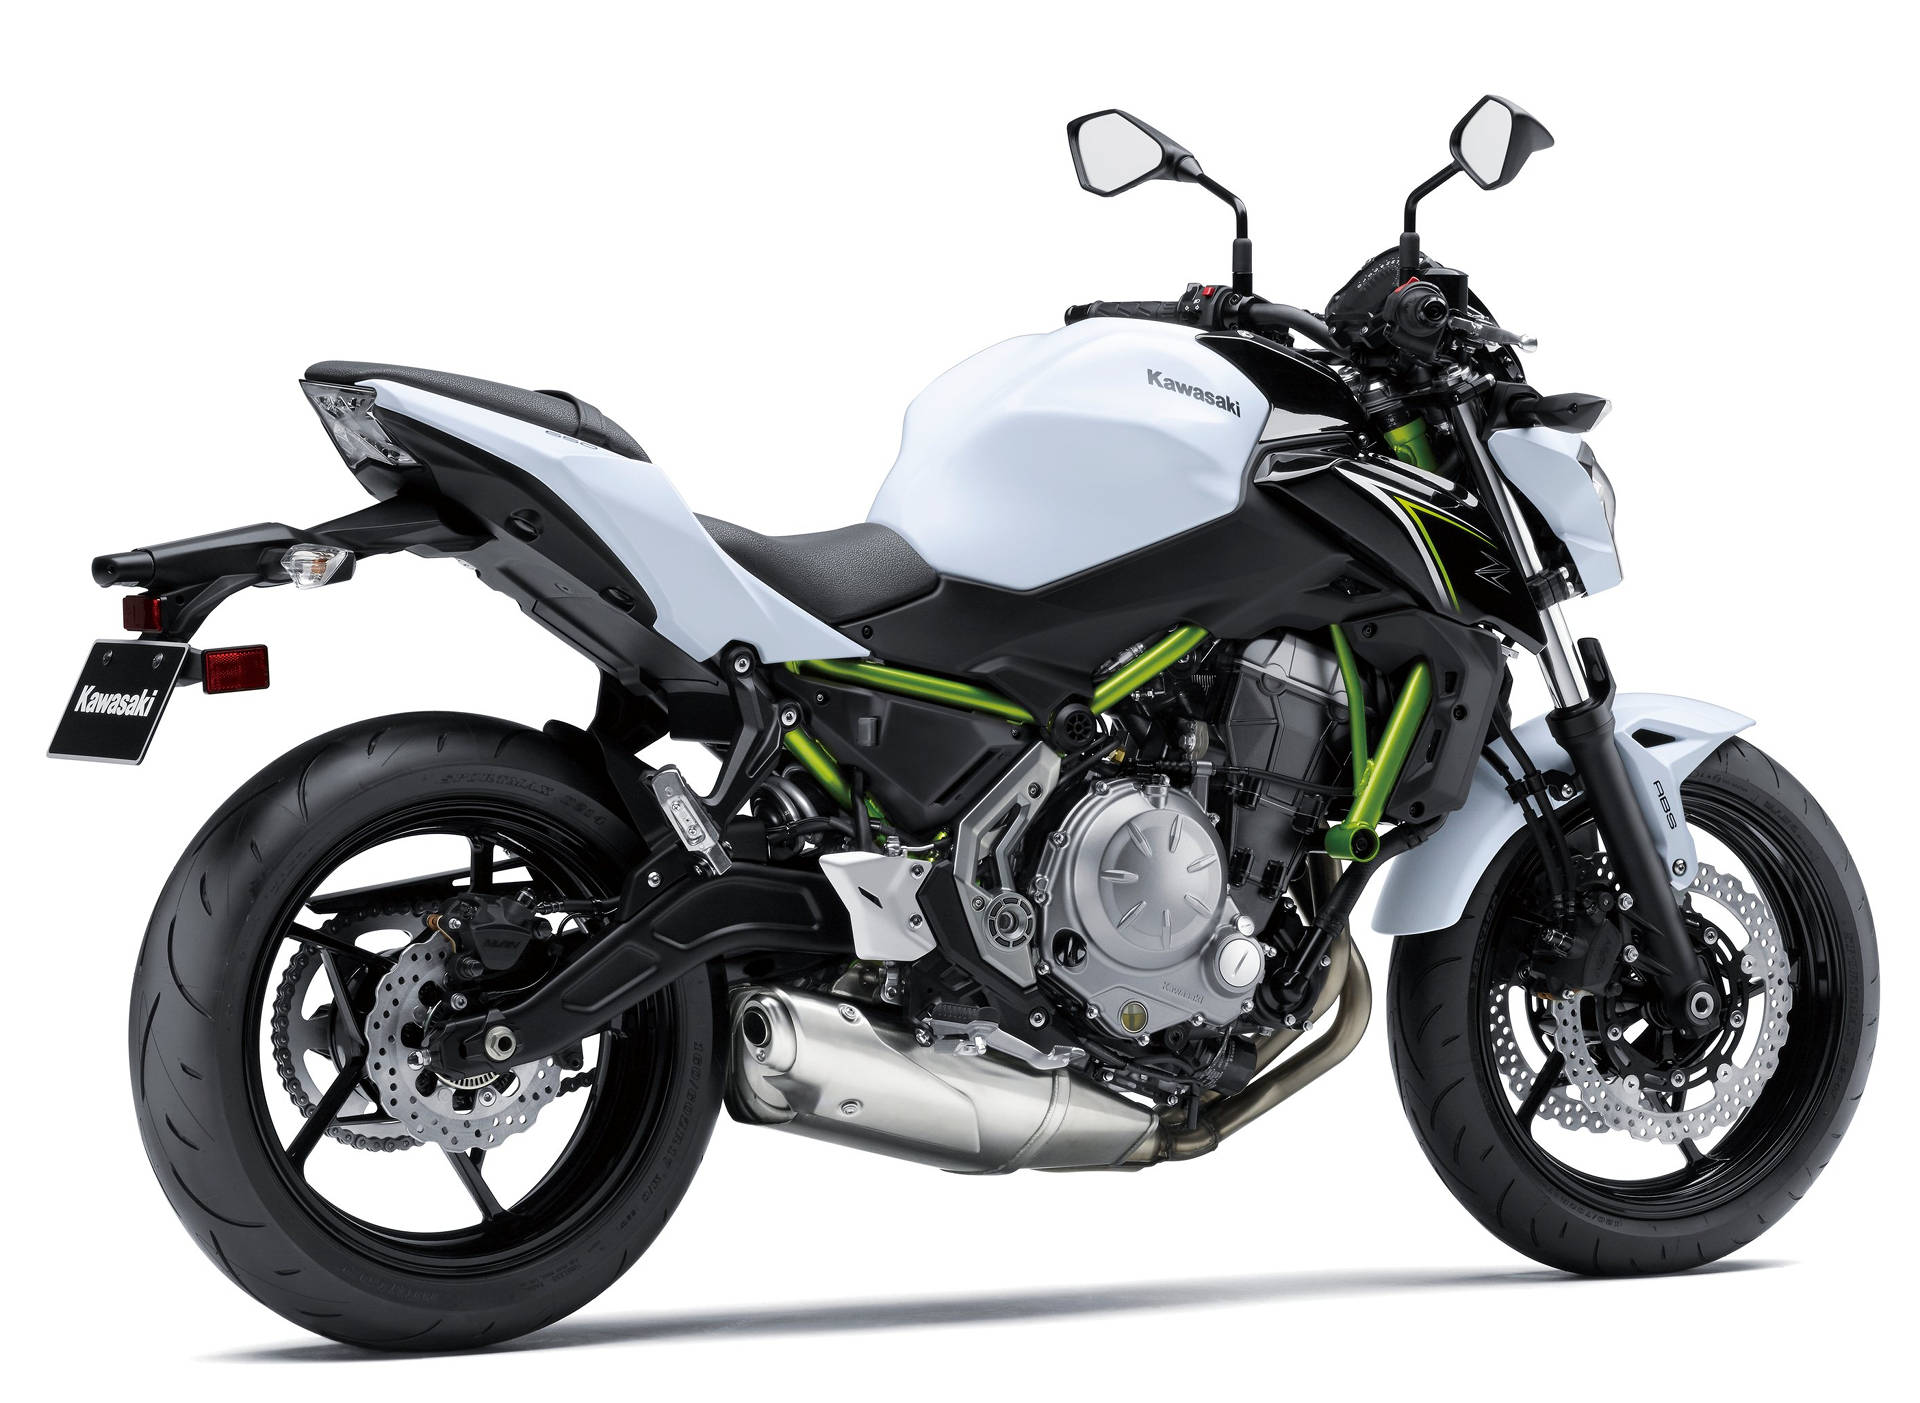 Sharing A Frame And Huge Weight Reduction With The New Ninja 650 ABS Also Reported On Today US Bound Z650 Includes Light Trellis